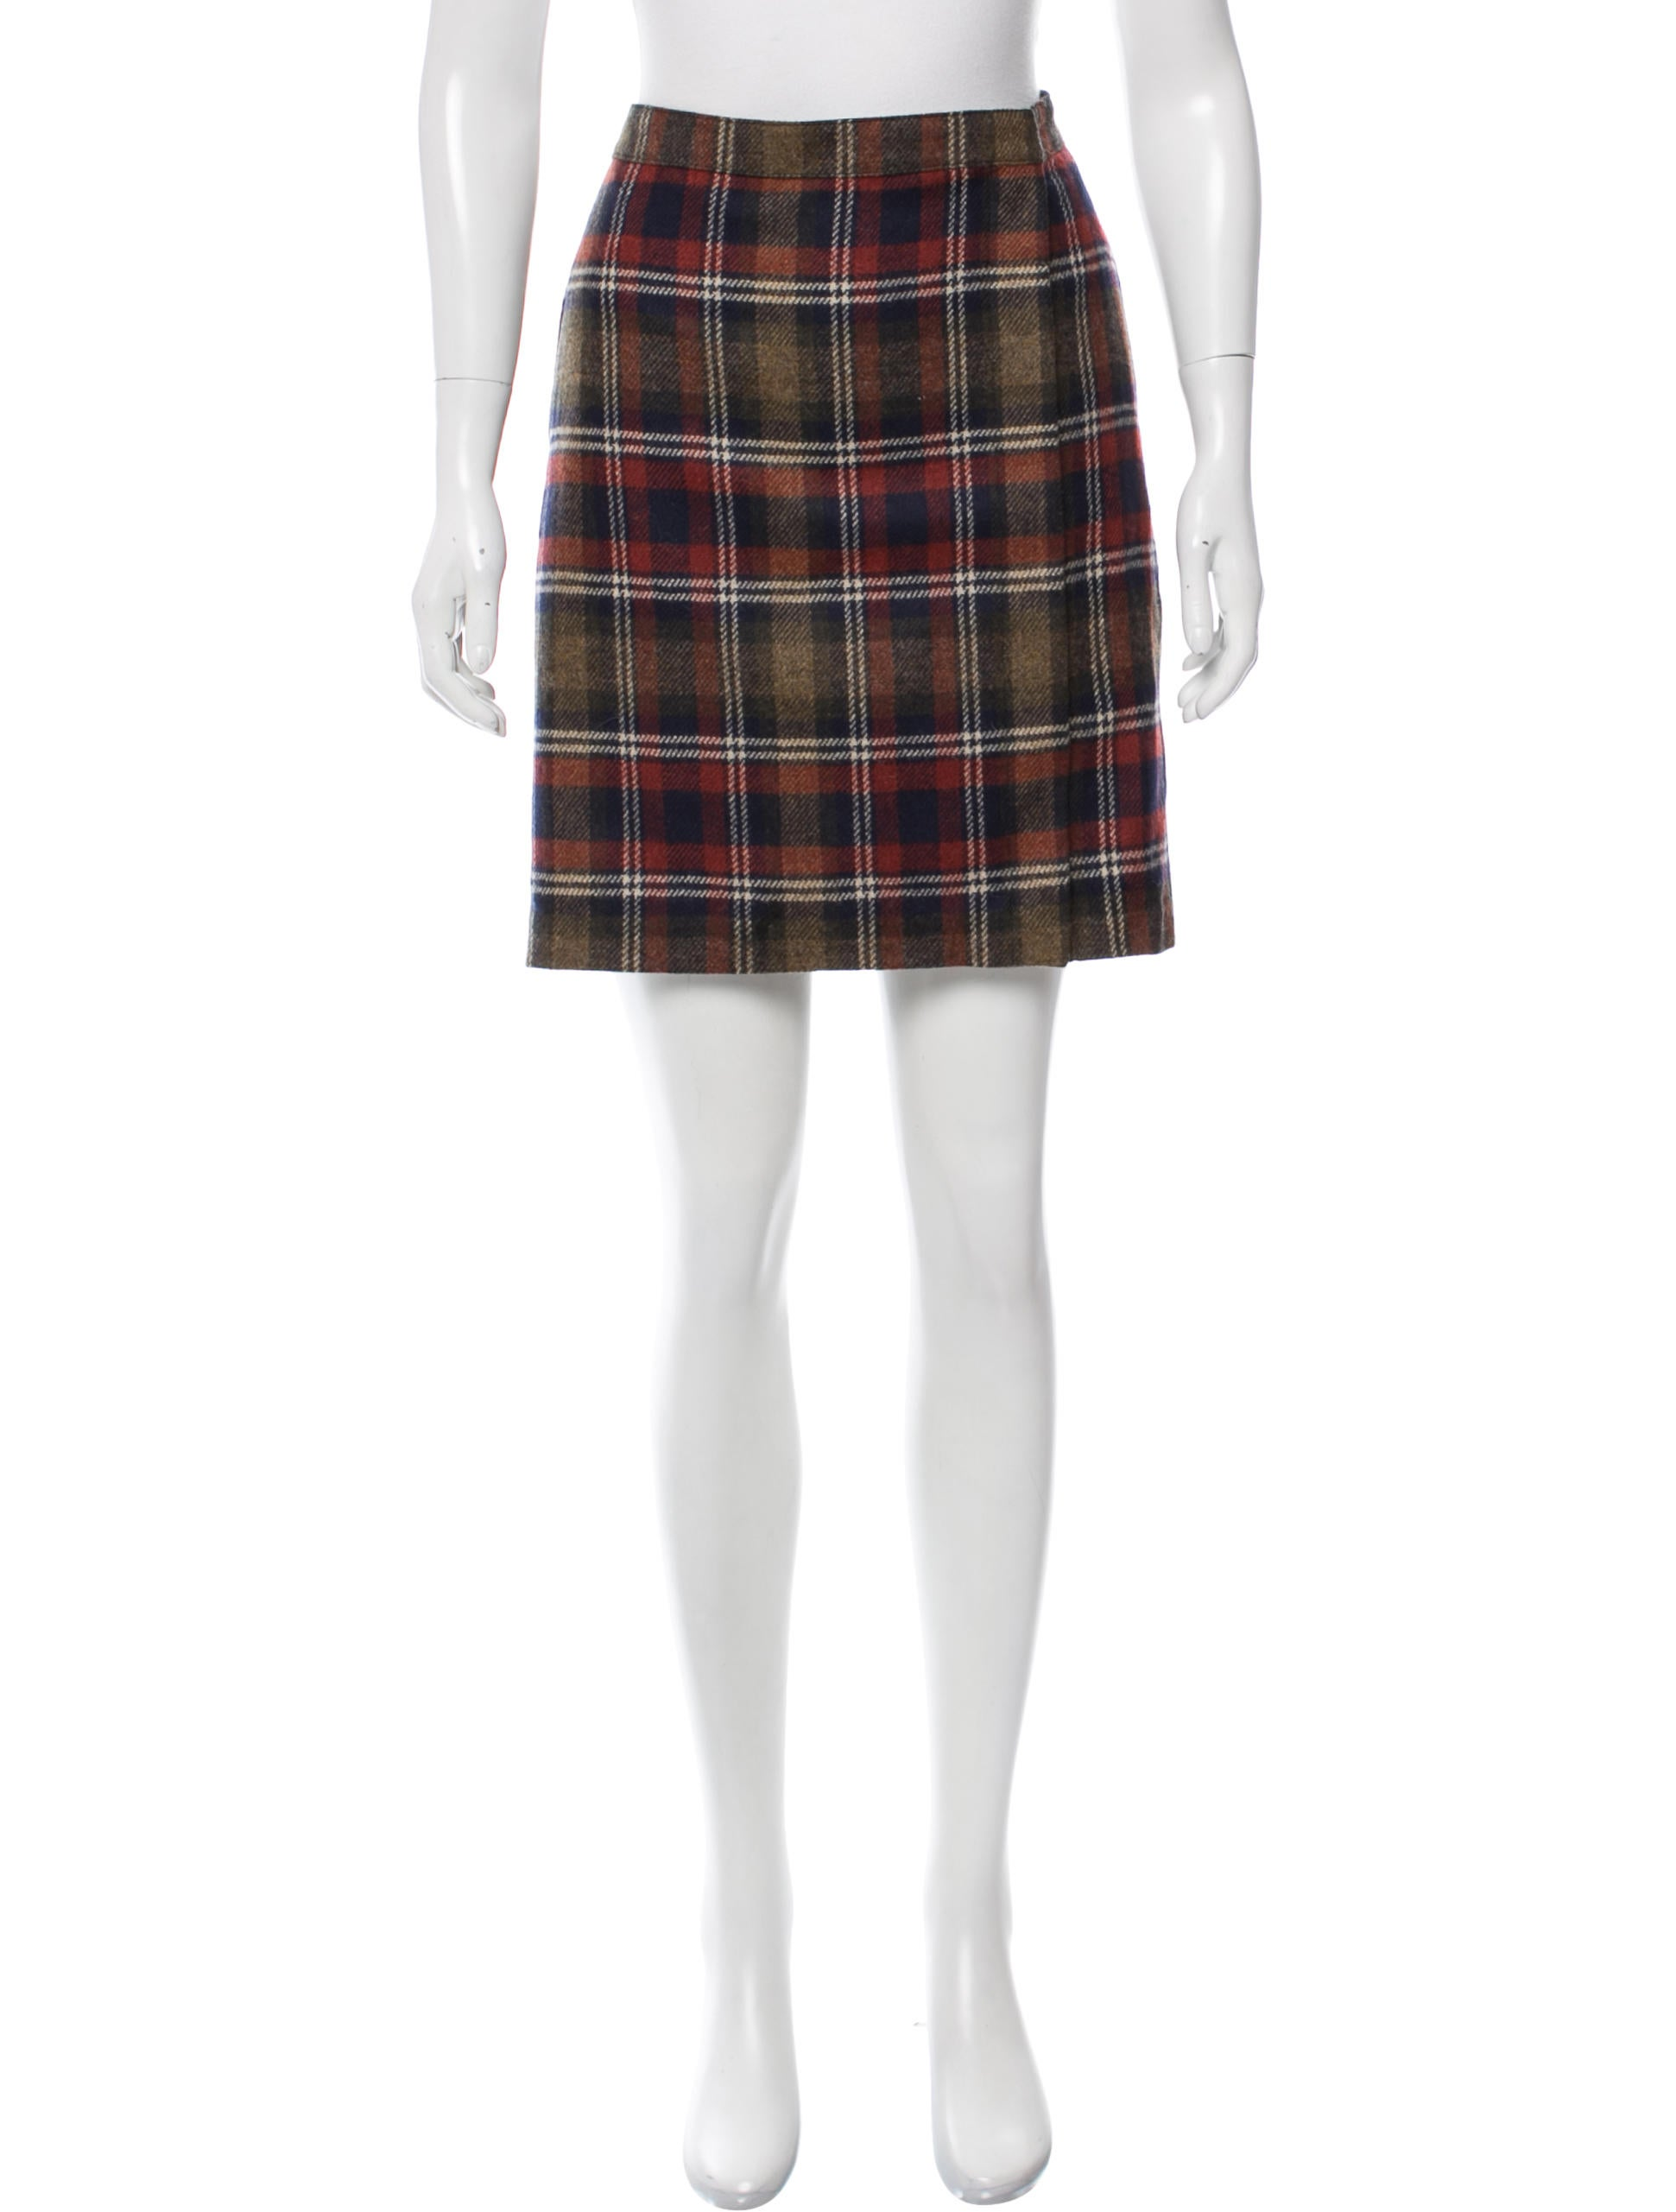 Shop Chadwicks of Boston for our Long A-Line Wool Skirt. Browse our online catalog for more classic clothing, shoes & accessories to finish your look.